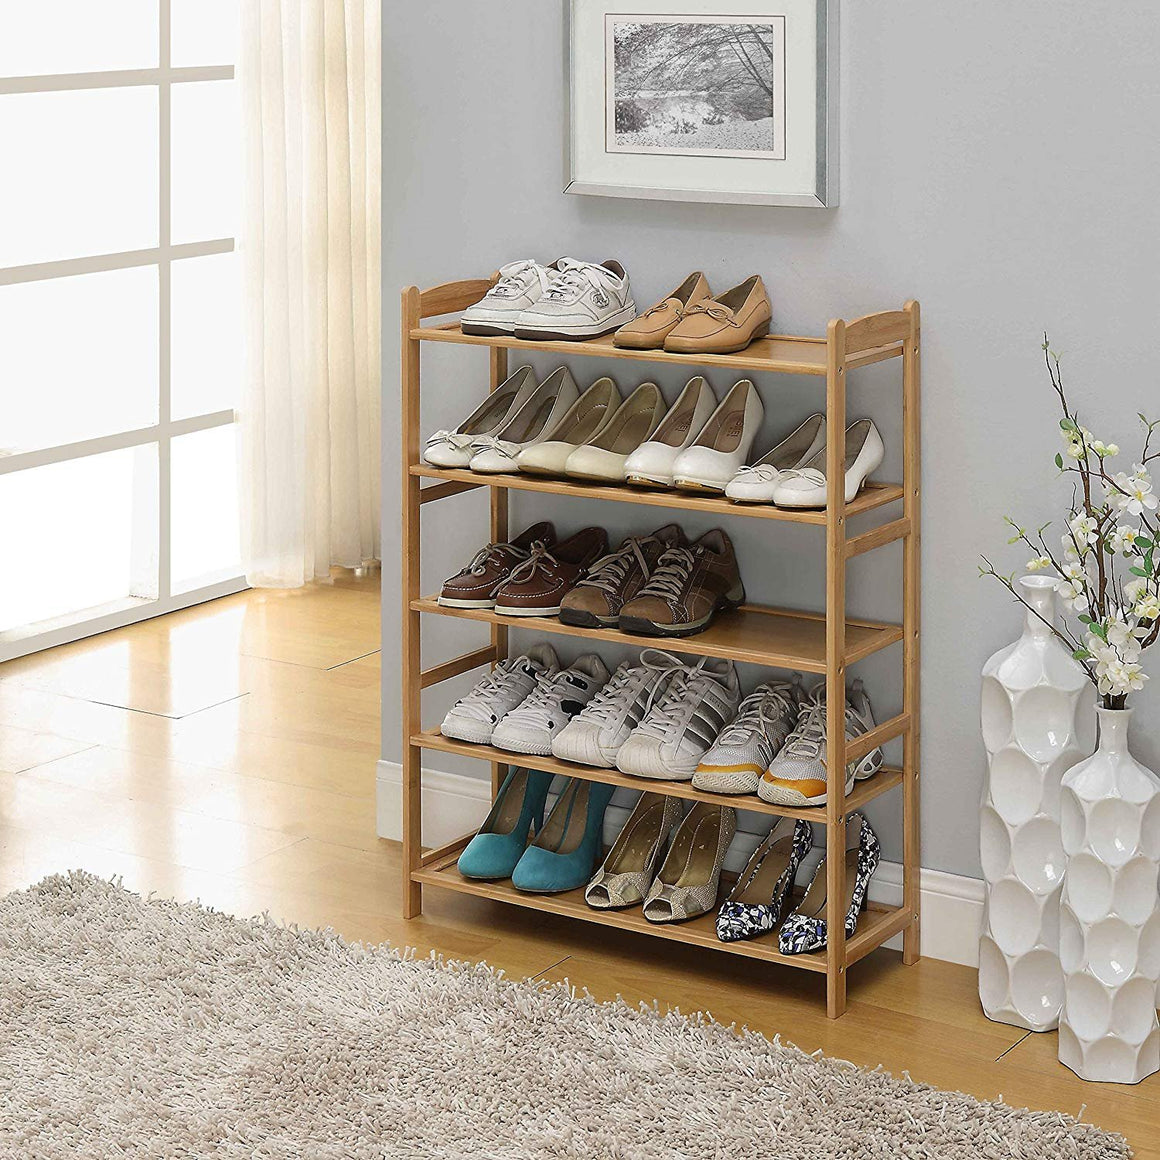 100% Natural Bamboo Wood 5-Tier Shoe Storage Racks Shelf Organizer